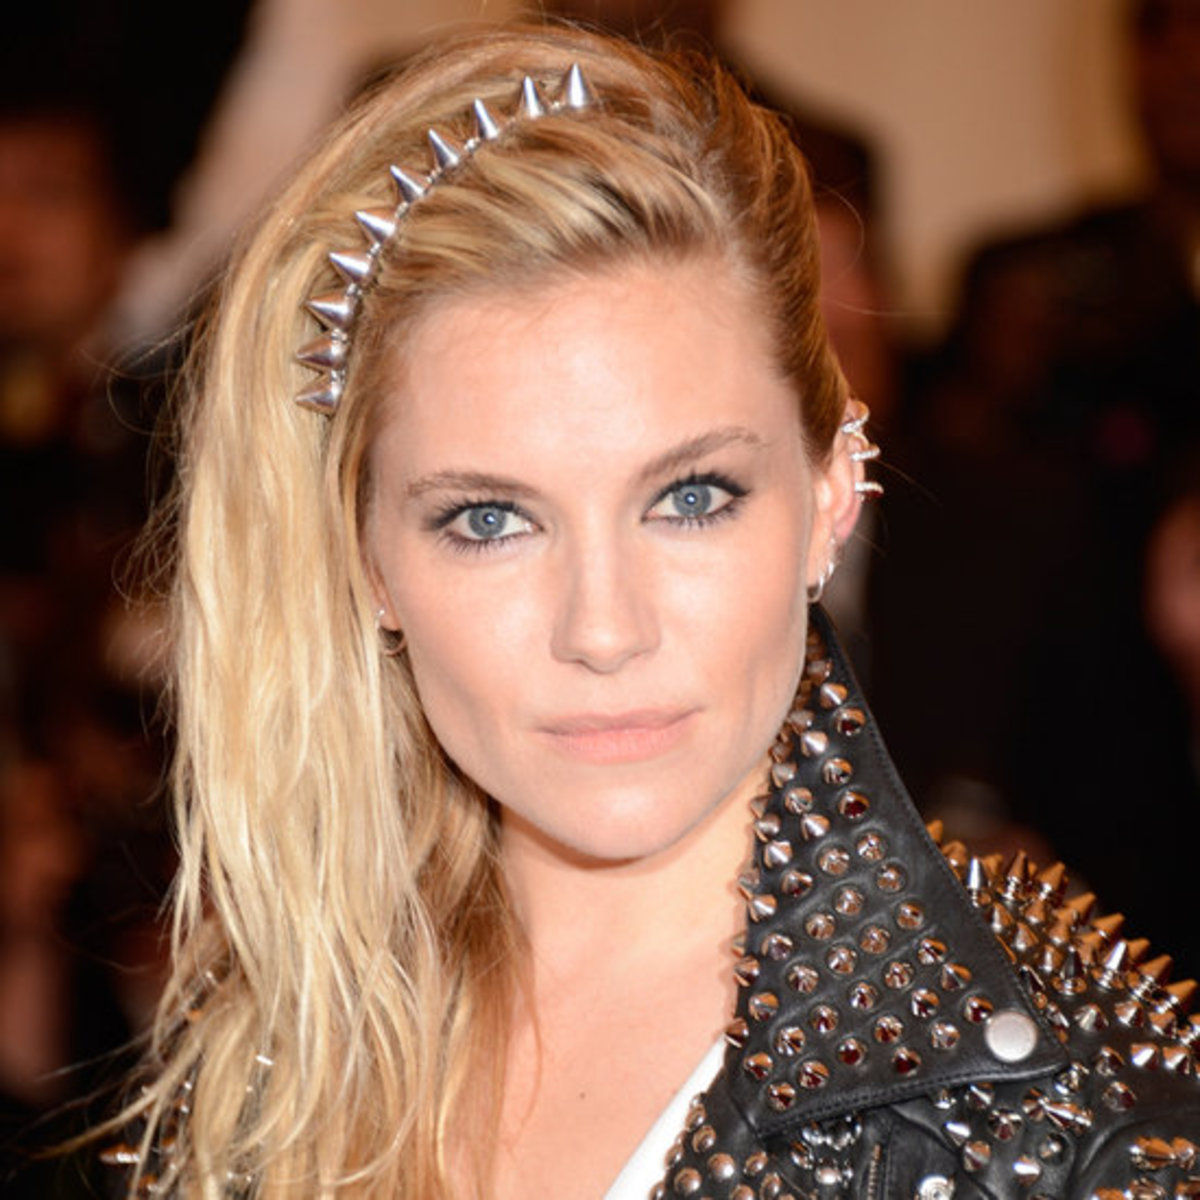 Sienna Miller in a metal spike headband